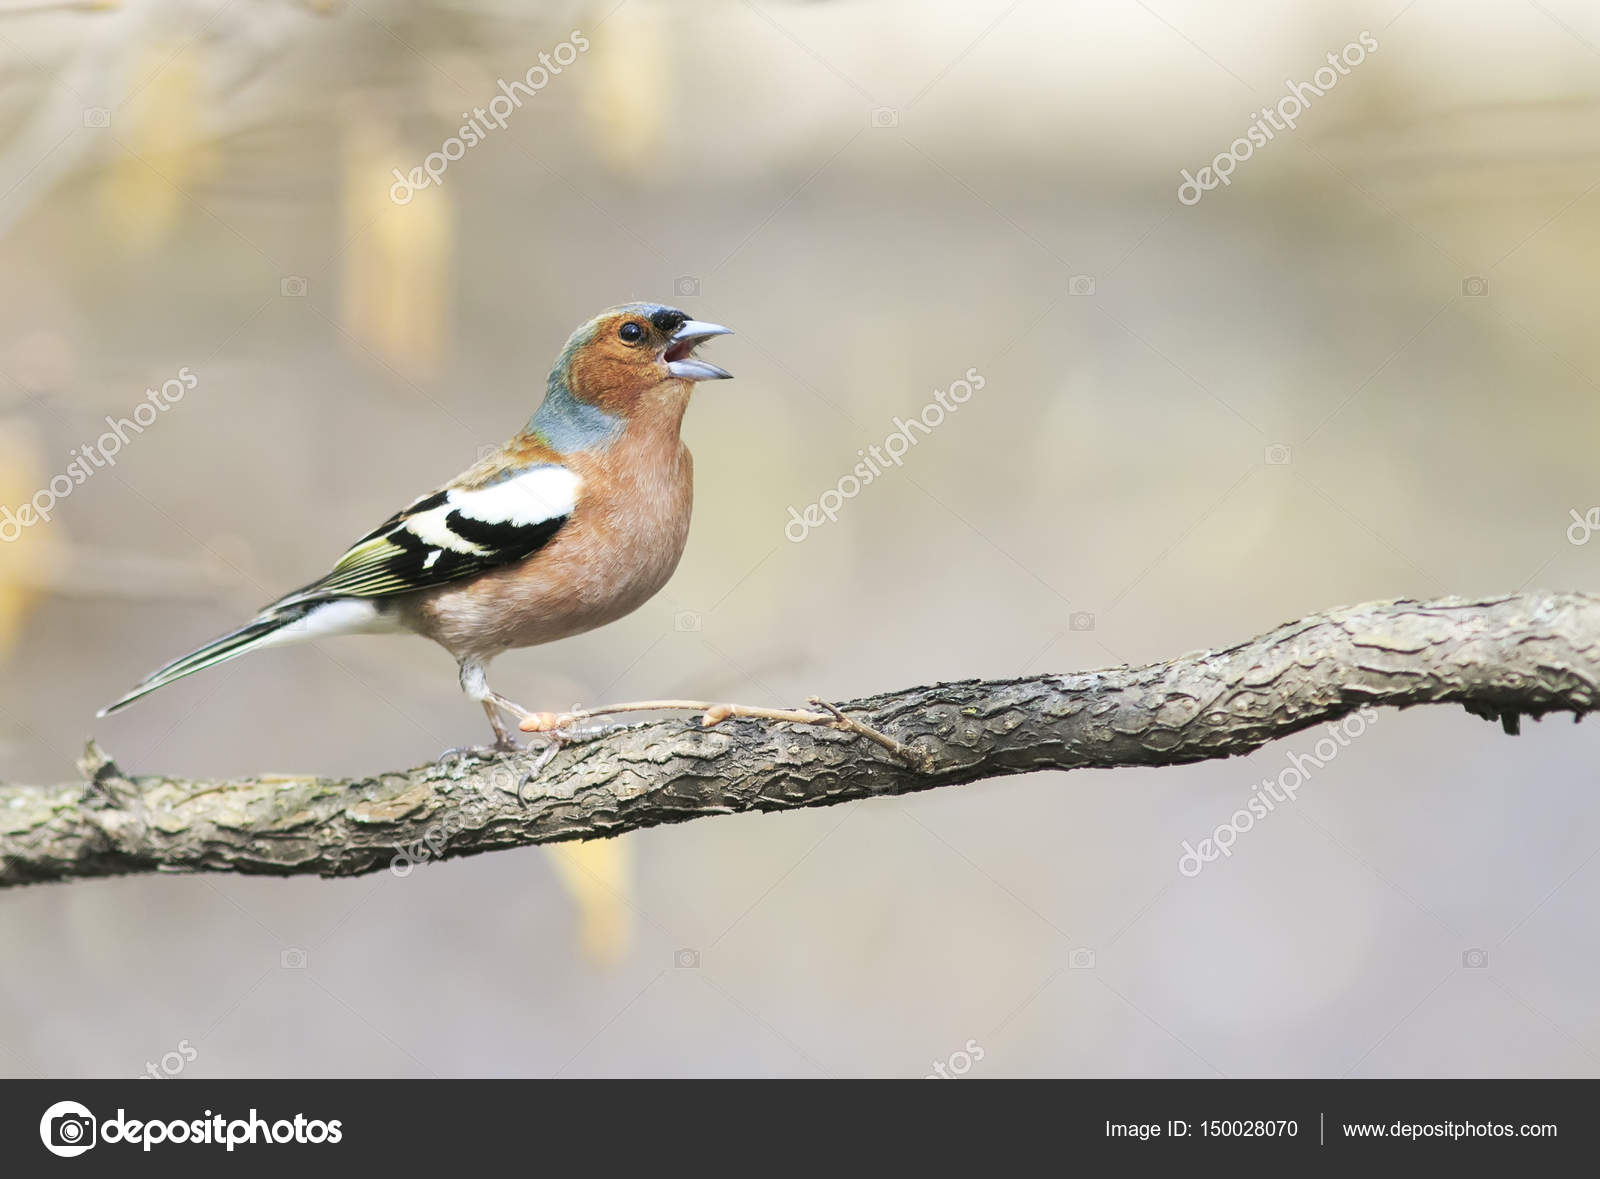 Marvelous Funny Bird Chaffinch Leaping Singing The Song In Spring Park U2014 Stock Photo